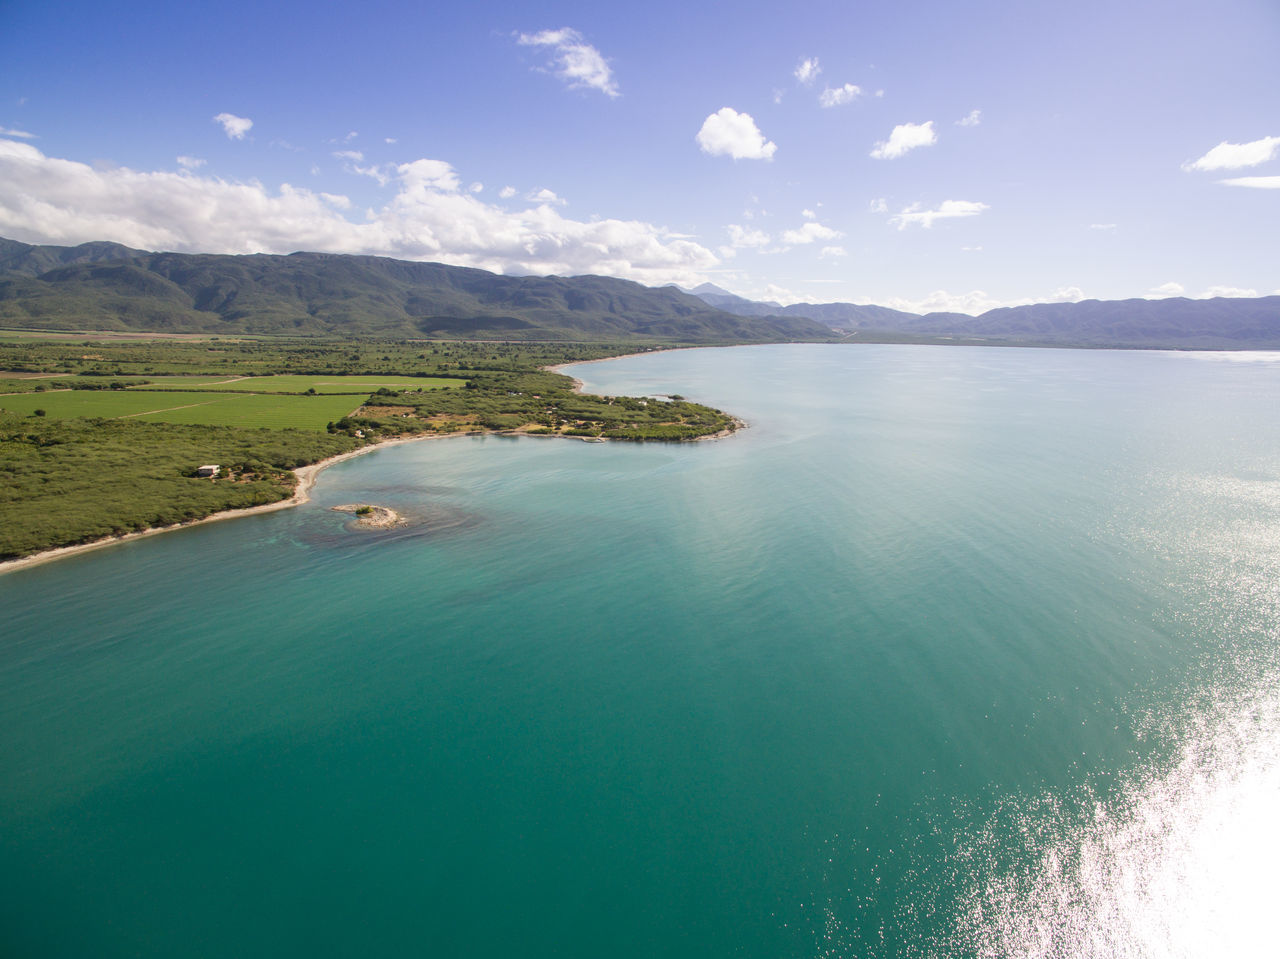 Scenics Landscape Sky Beach Coastline Freedom Beachphotography Nature Photography Over Water Amazing Scenery Ocean Photography Dronephotography Caribbean Island Caribbean Sea Caribbean Playacaracoles Dominican Republic Santodomingo Dronepic Beauty In Nature Nature Aerial View Water Outdoors Field